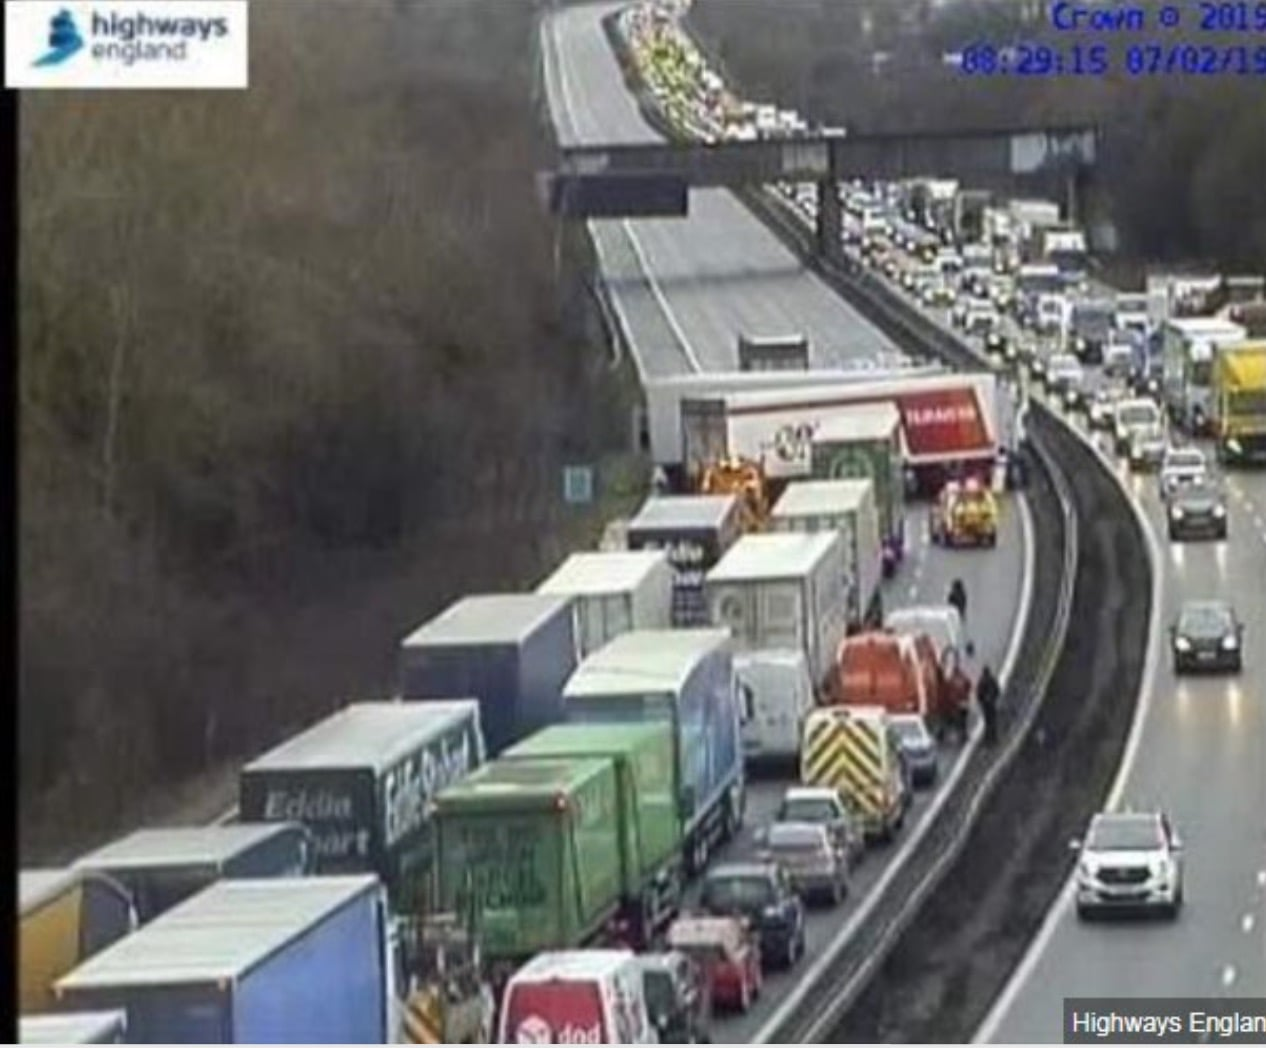 M1: Travel time through accident area 70 minutes - Northbound closed